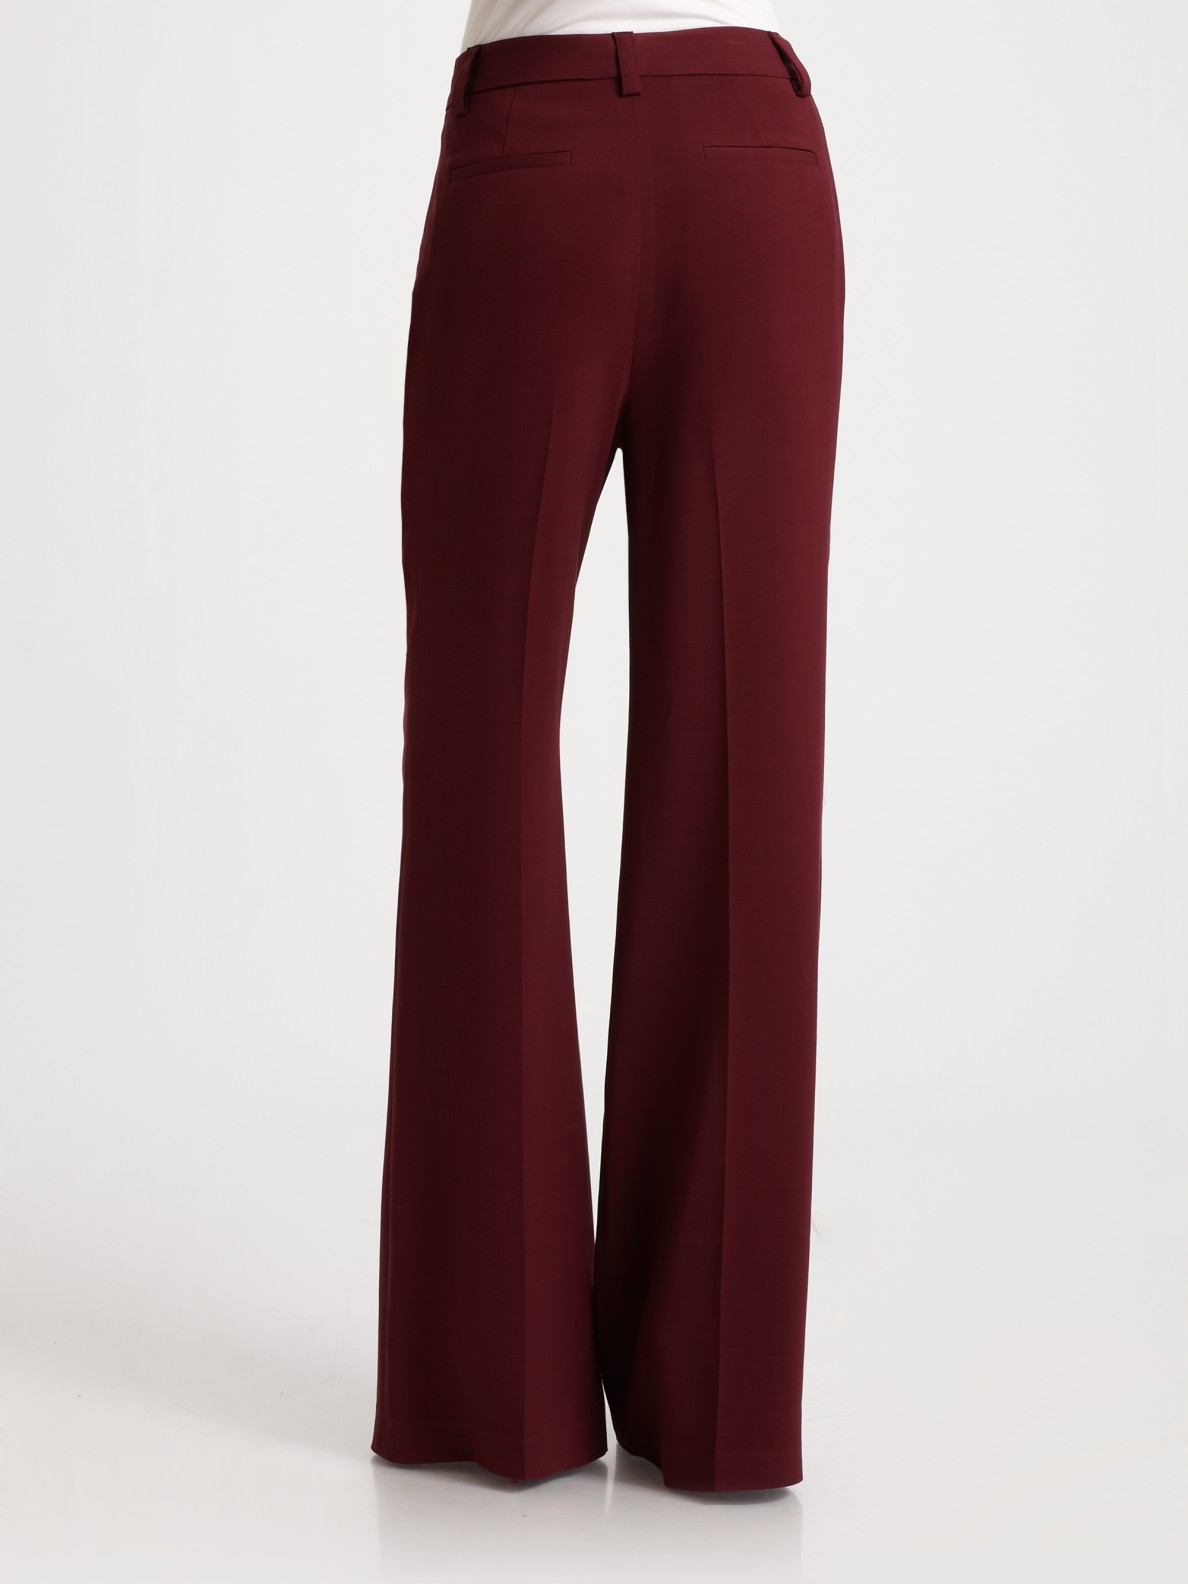 Shop our Collection of Women's Purple Wide Leg Pants at theotherqi.cf for the Latest Designer Brands & Styles. FREE SHIPPING AVAILABLE!